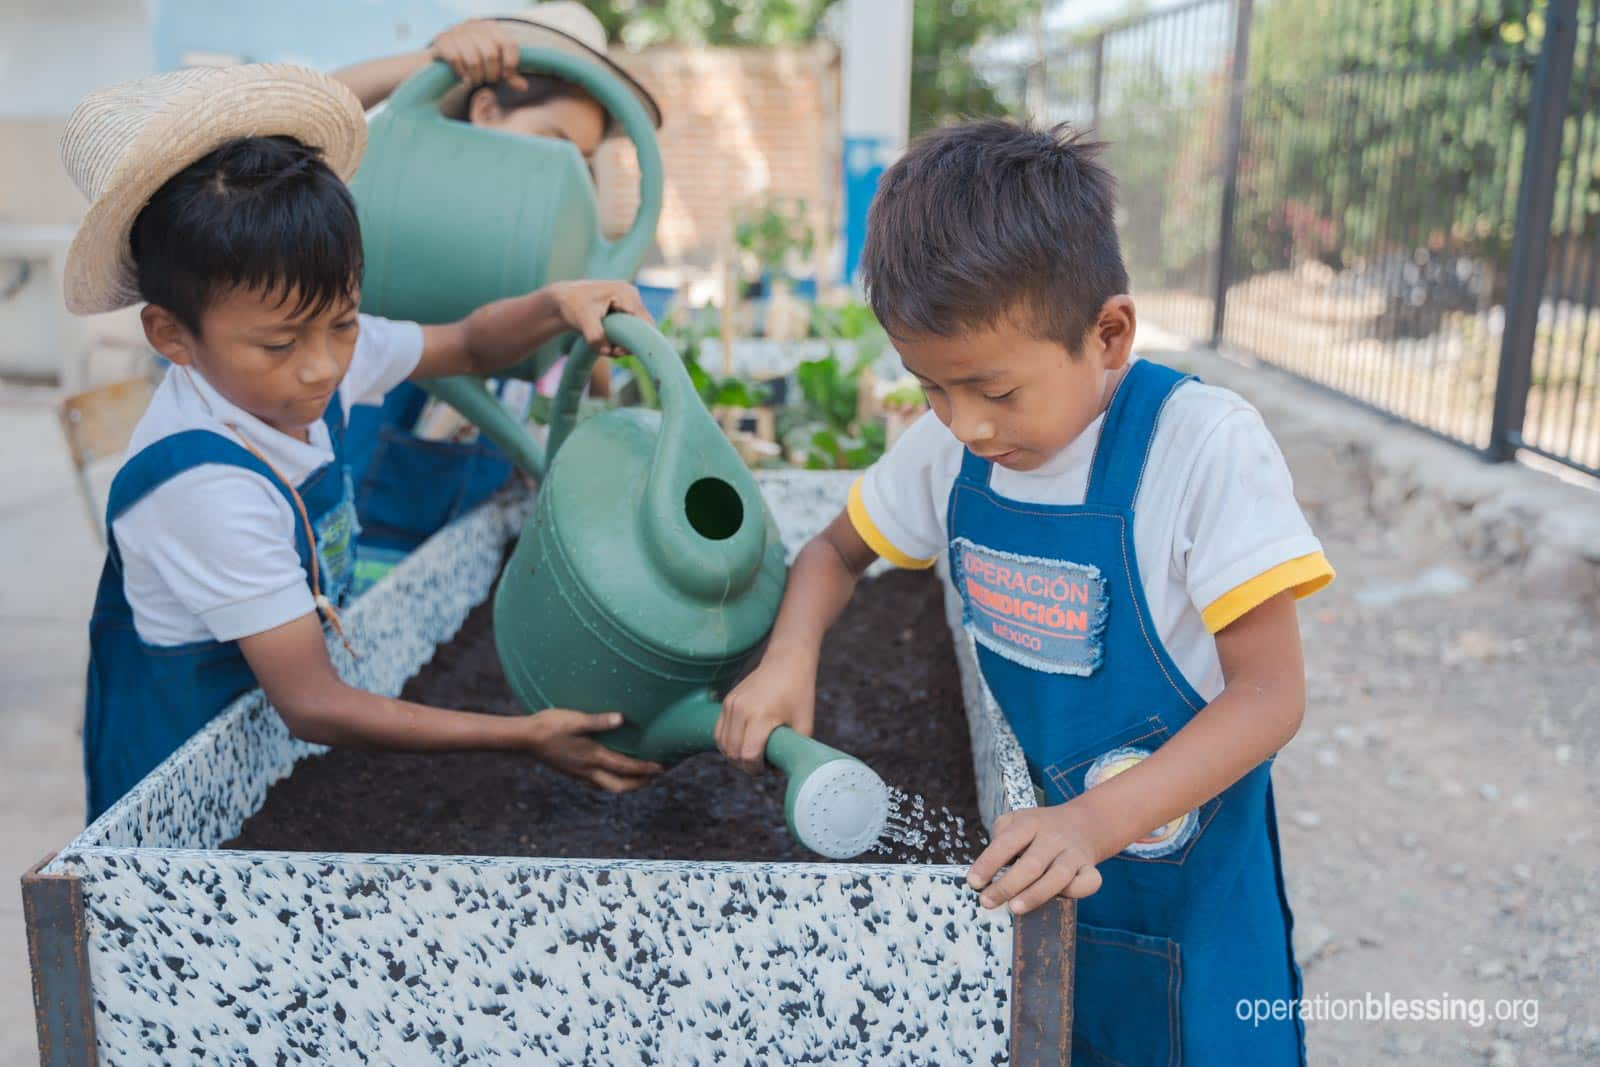 Mexican school children growing nutritious vegetables for hunger relief.